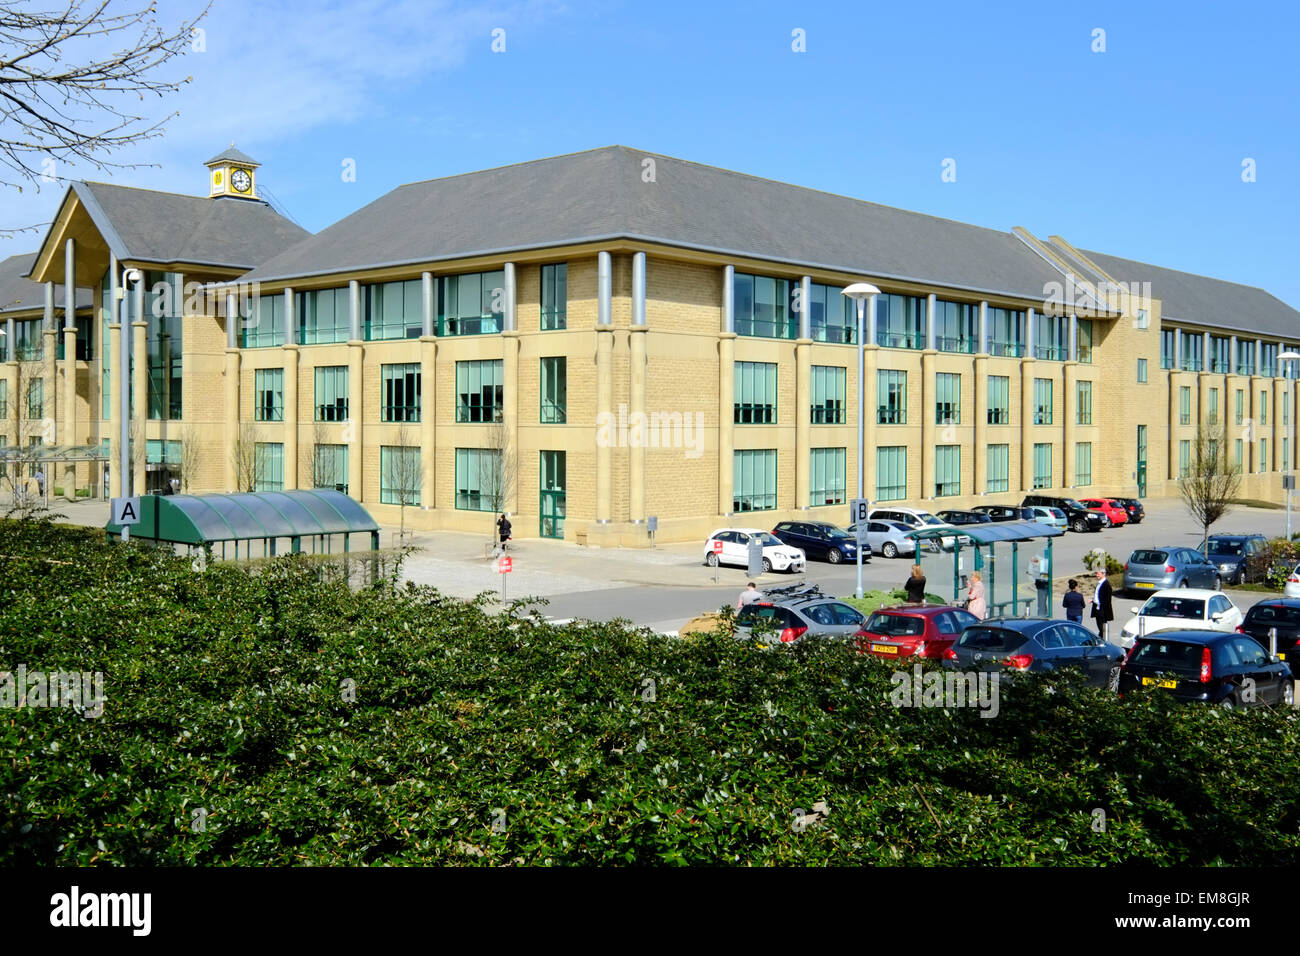 bradford yorkshire uk 16th 2015 a total of 720 jobs are 16th 2015 a total of 720 jobs are set to be lost at morrisons head office in bradford credit paul chambers alamy live news